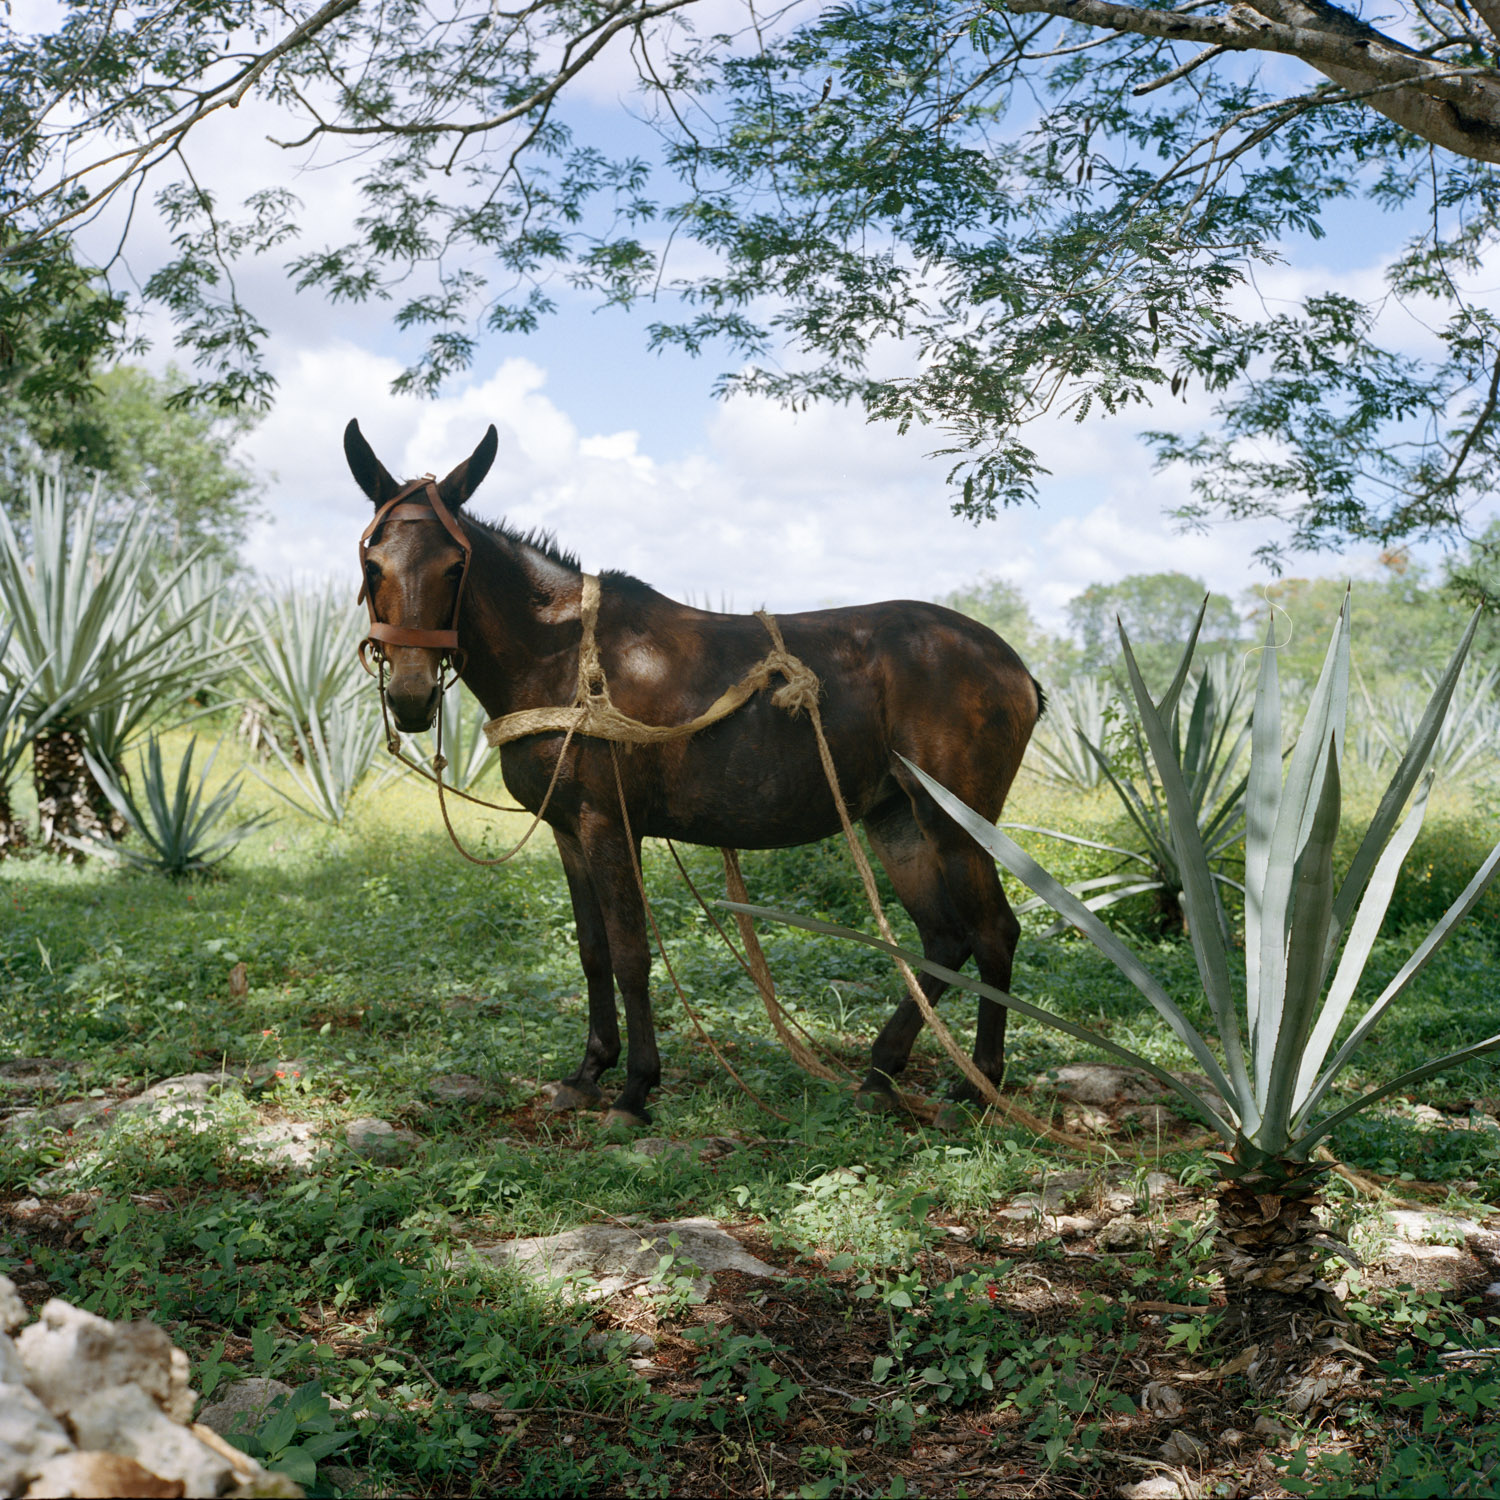 Donkey at henequen plantation. Sotuta de Peon, Mexico. 2016.